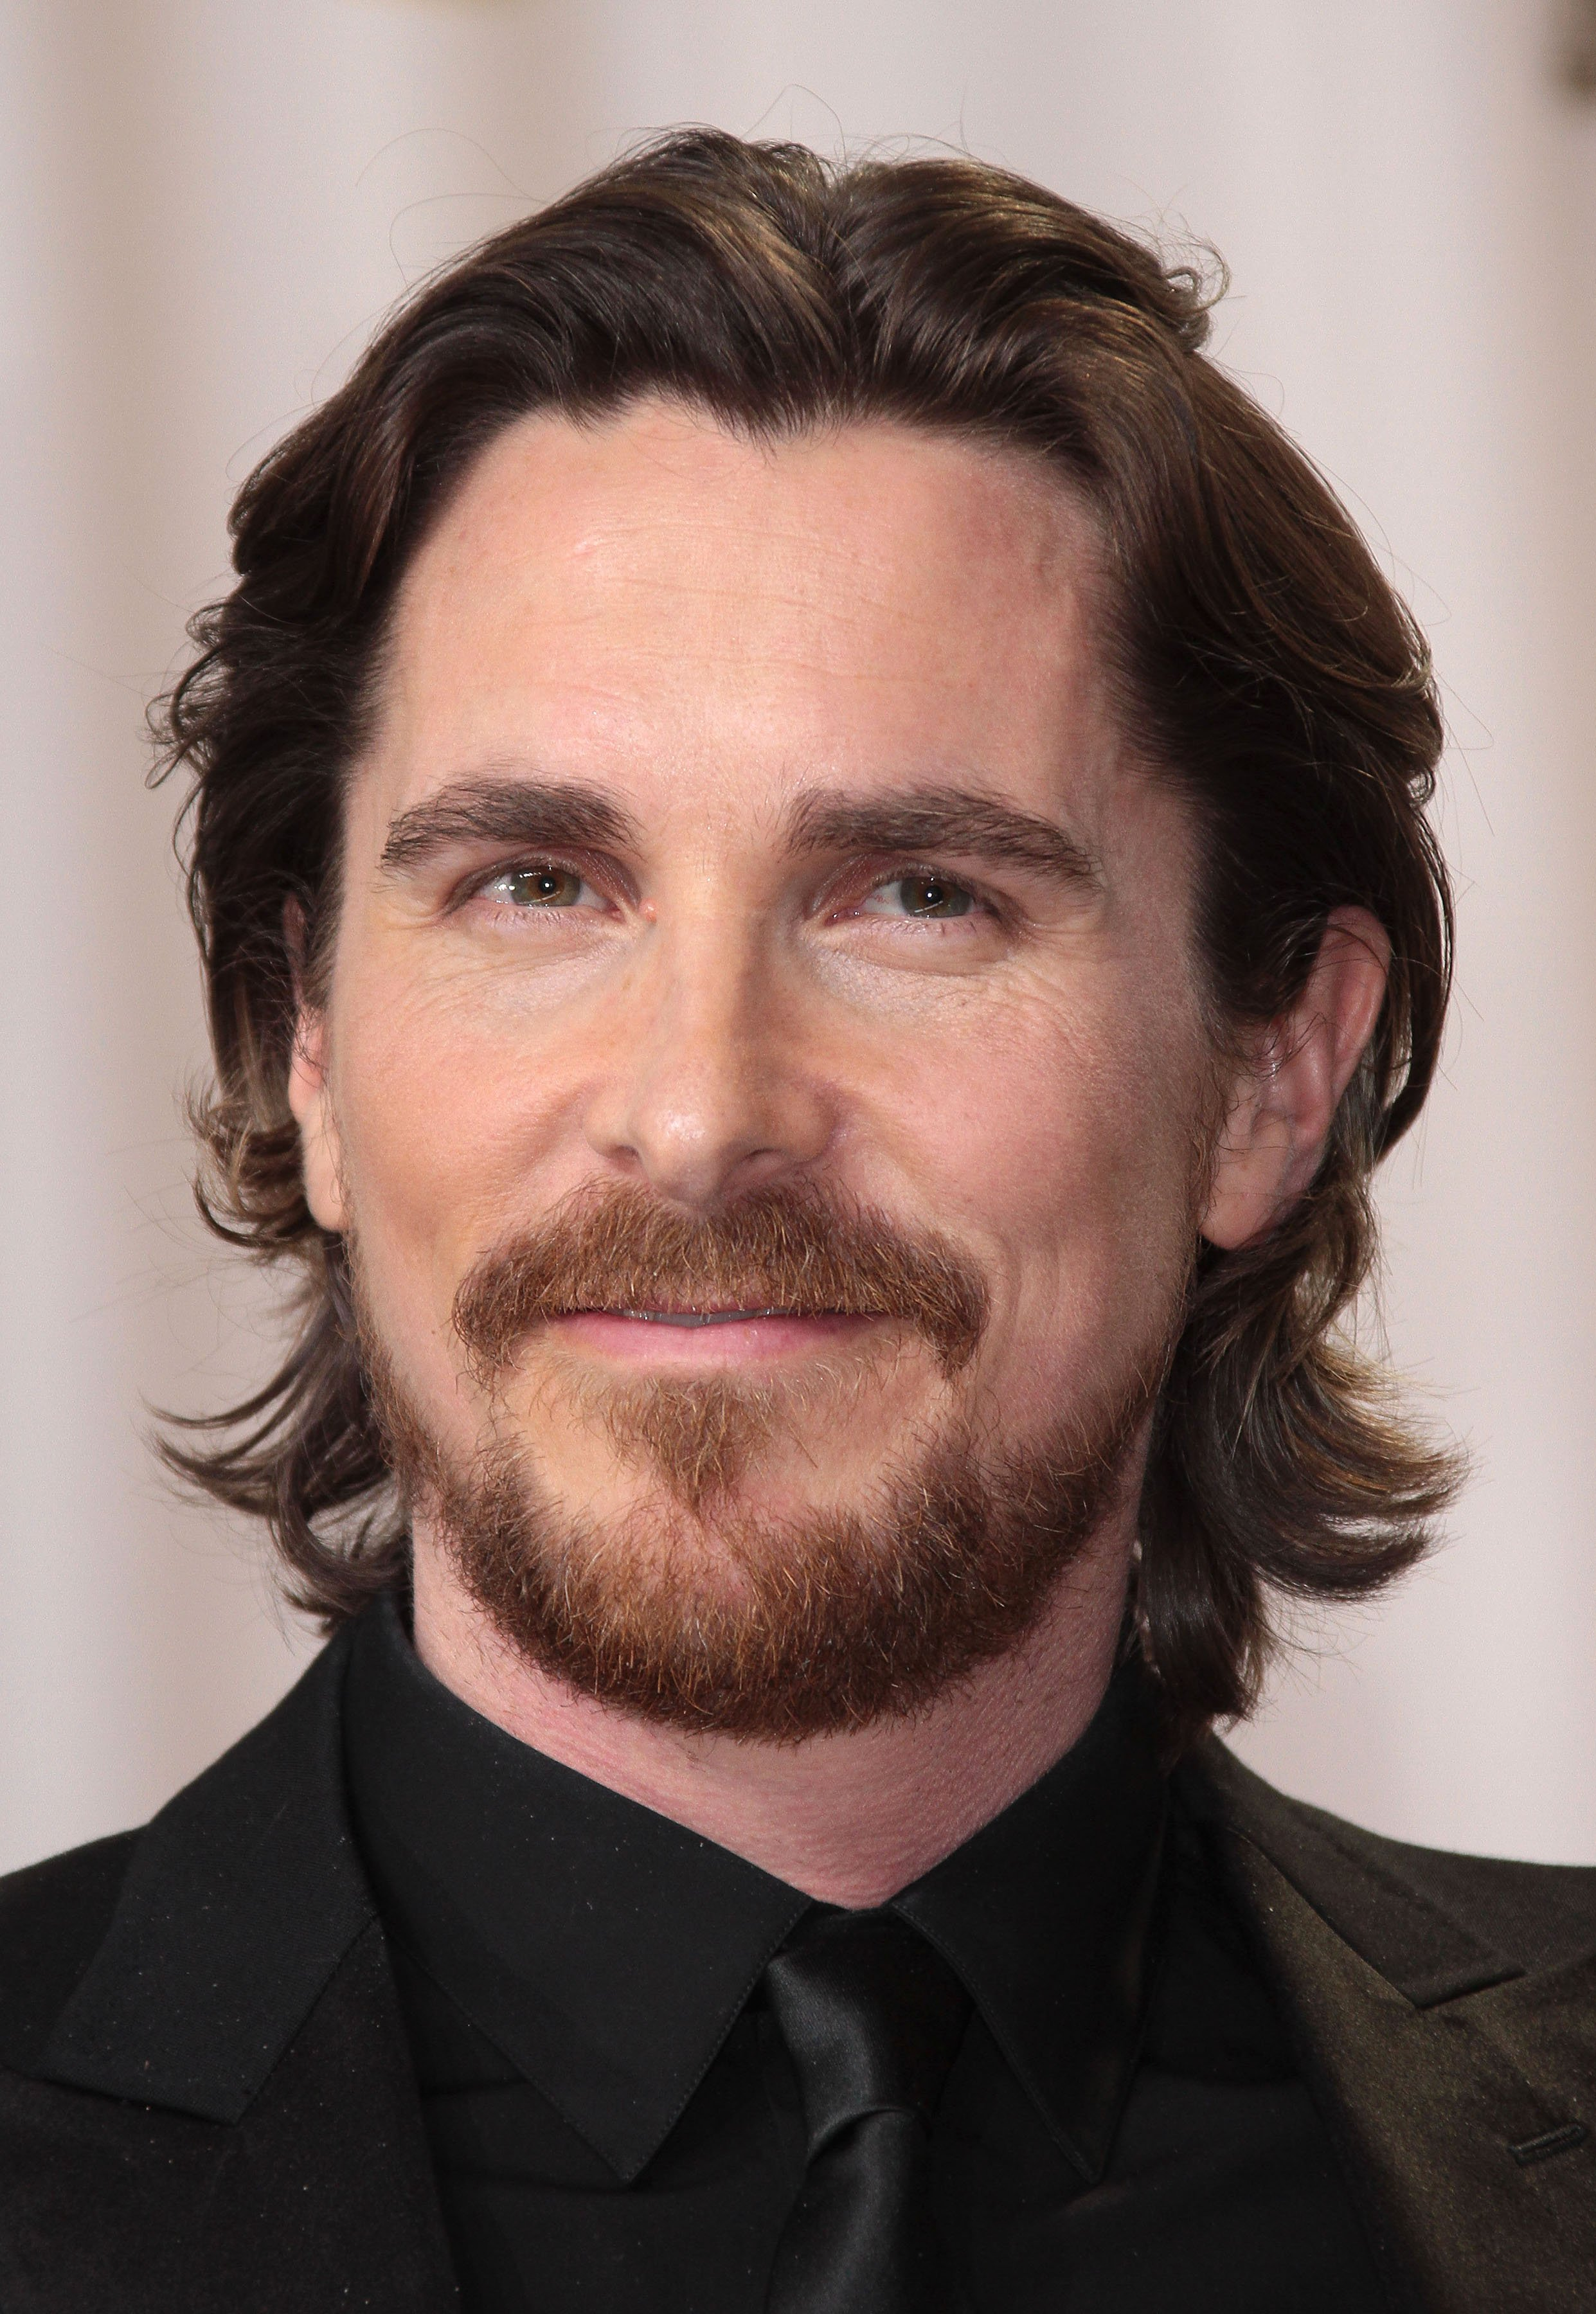 Charming Christian Bale Hairstyle